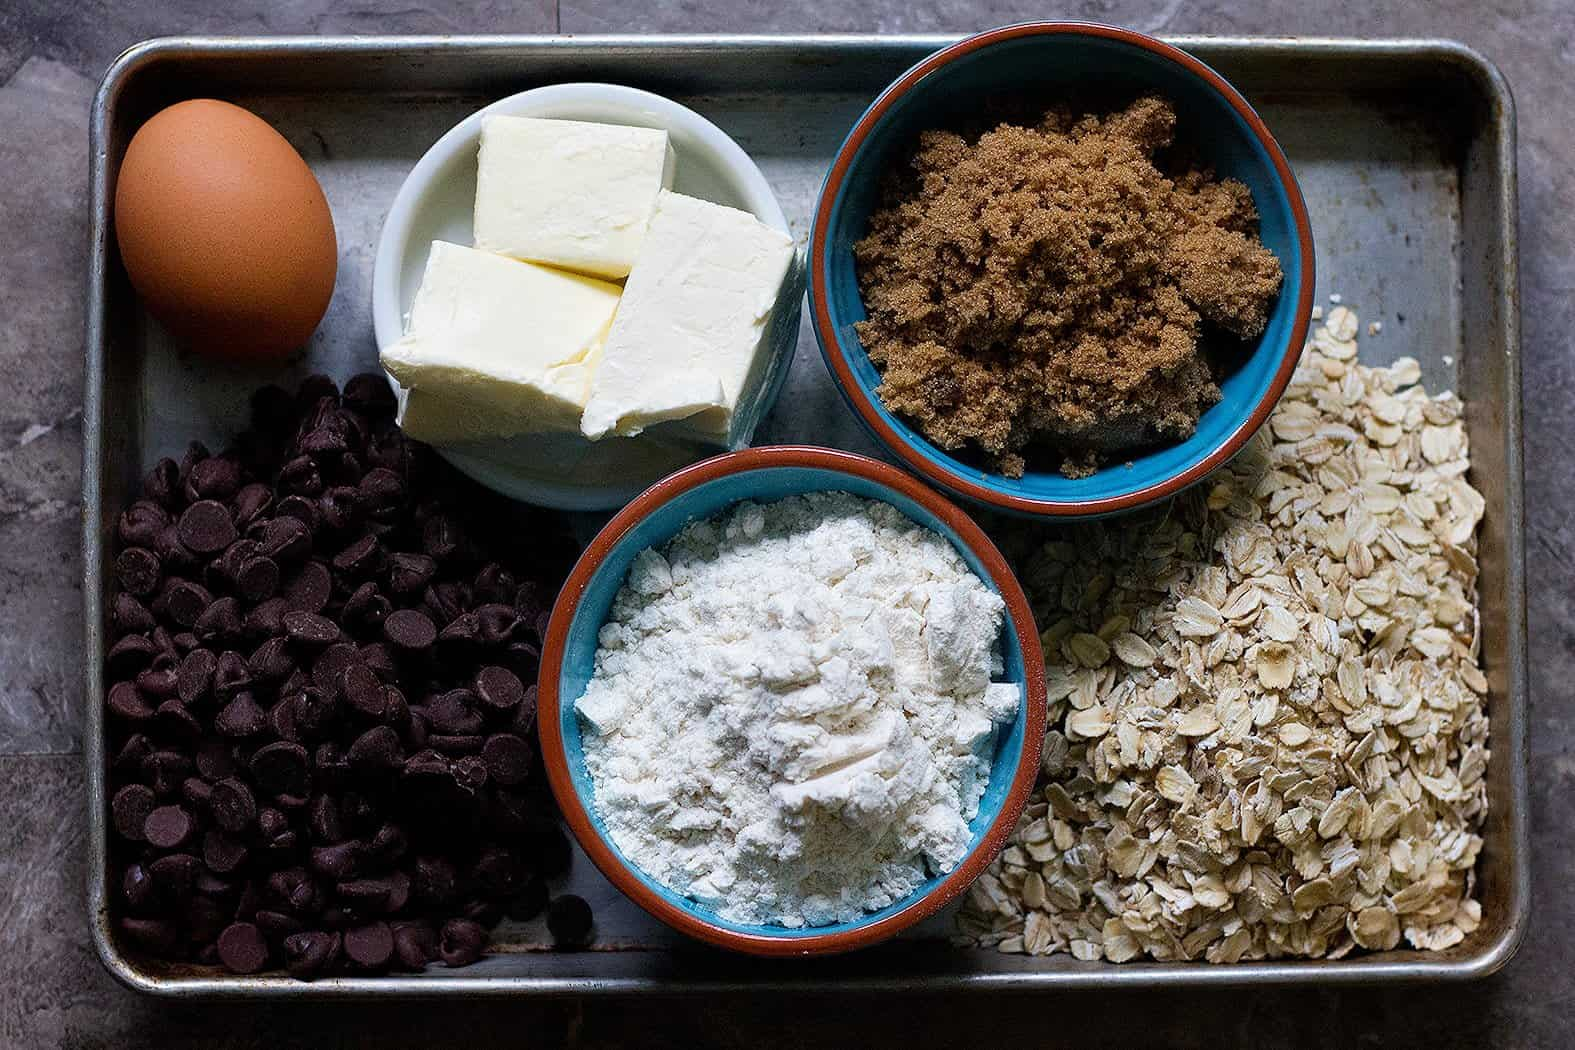 To make chewy oatmeal chocolate chip cookies you need eggs, butter, brown sugar, oatmeal, chocolate chips and flour.